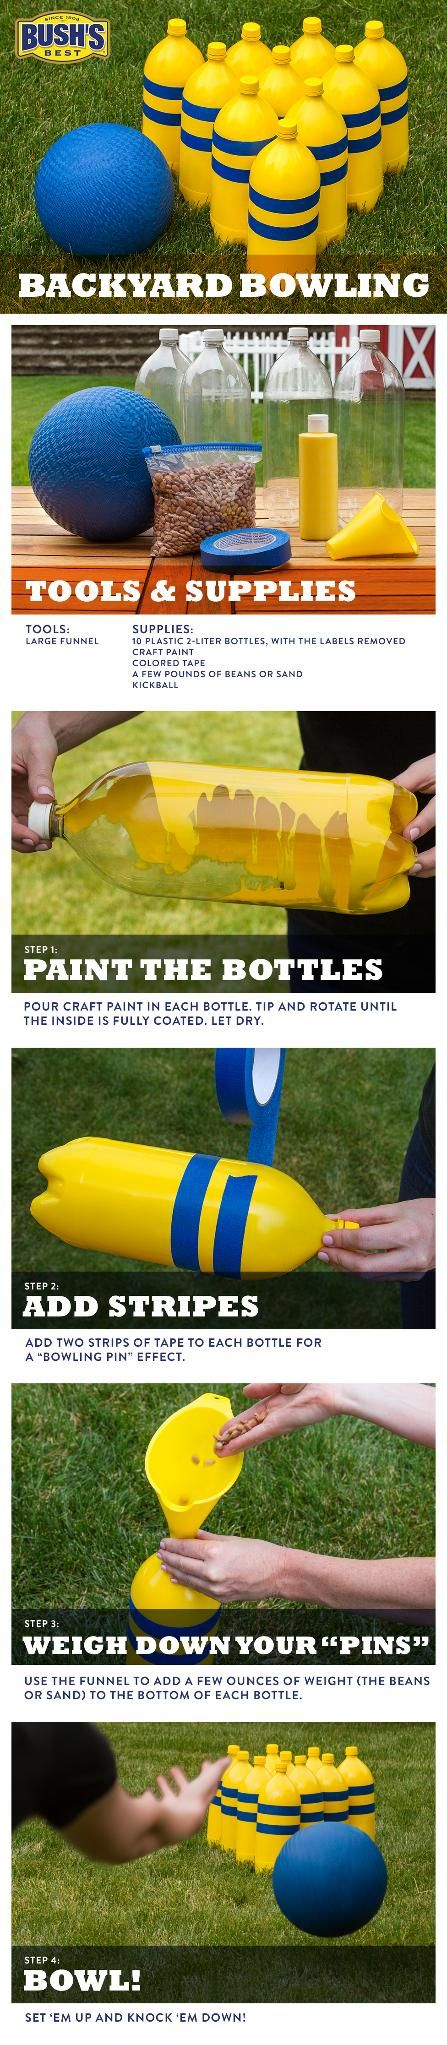 DIY Backyard Bowling – Easy to make with kids and a great way to recycle the 2-liter bottles leftover after a summer BBQ. Repin and start saving those soda bottles.: